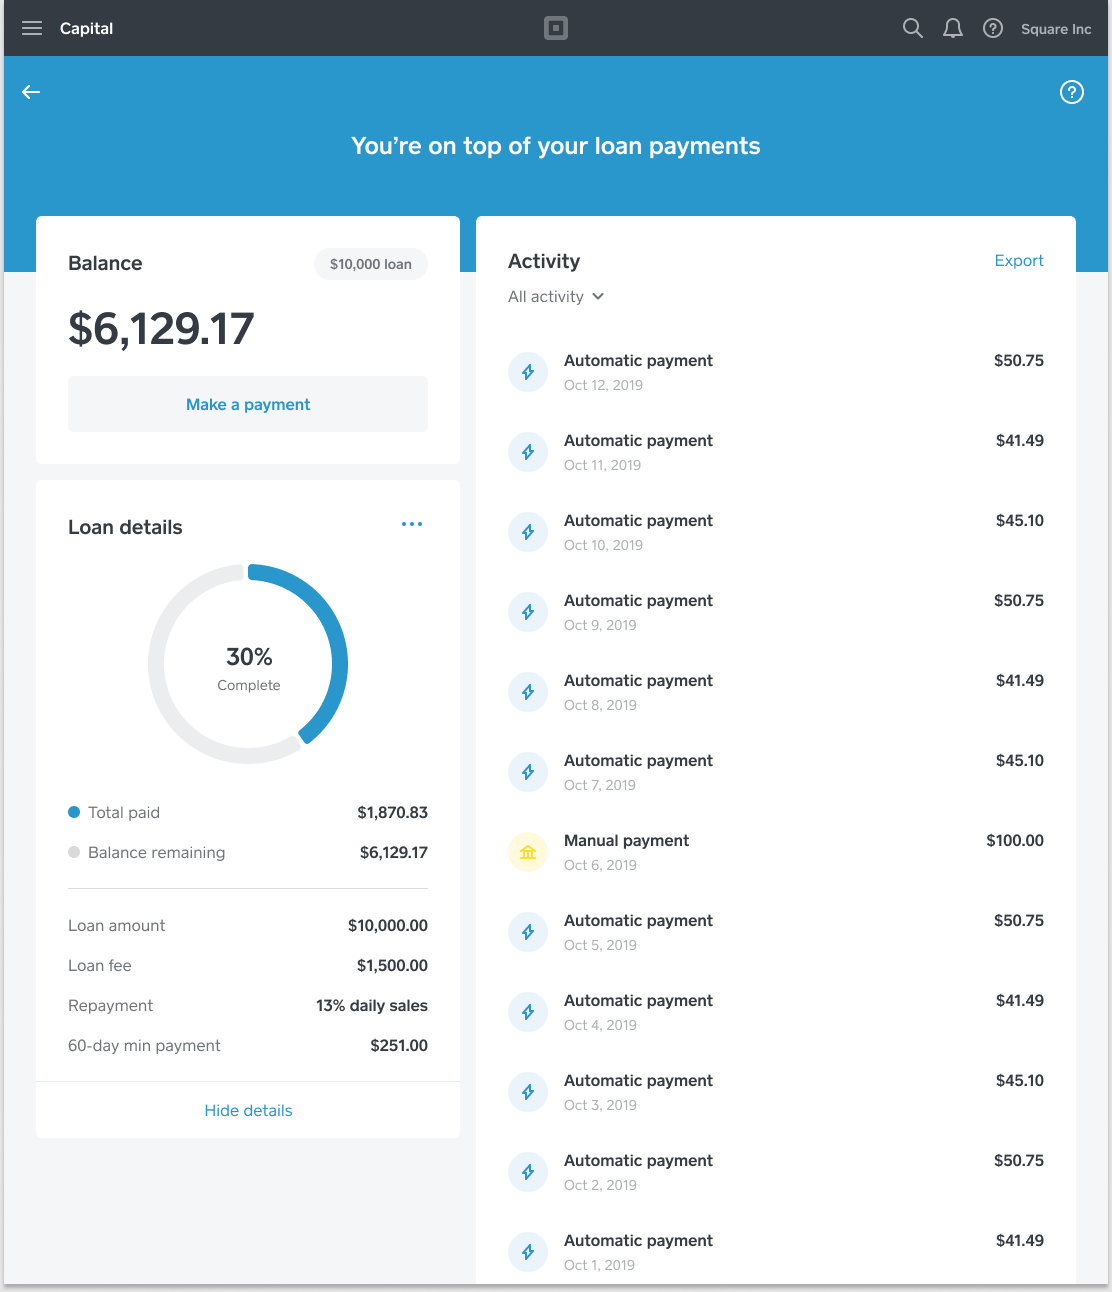 Capital - Repayment Dashboard - Dash - US